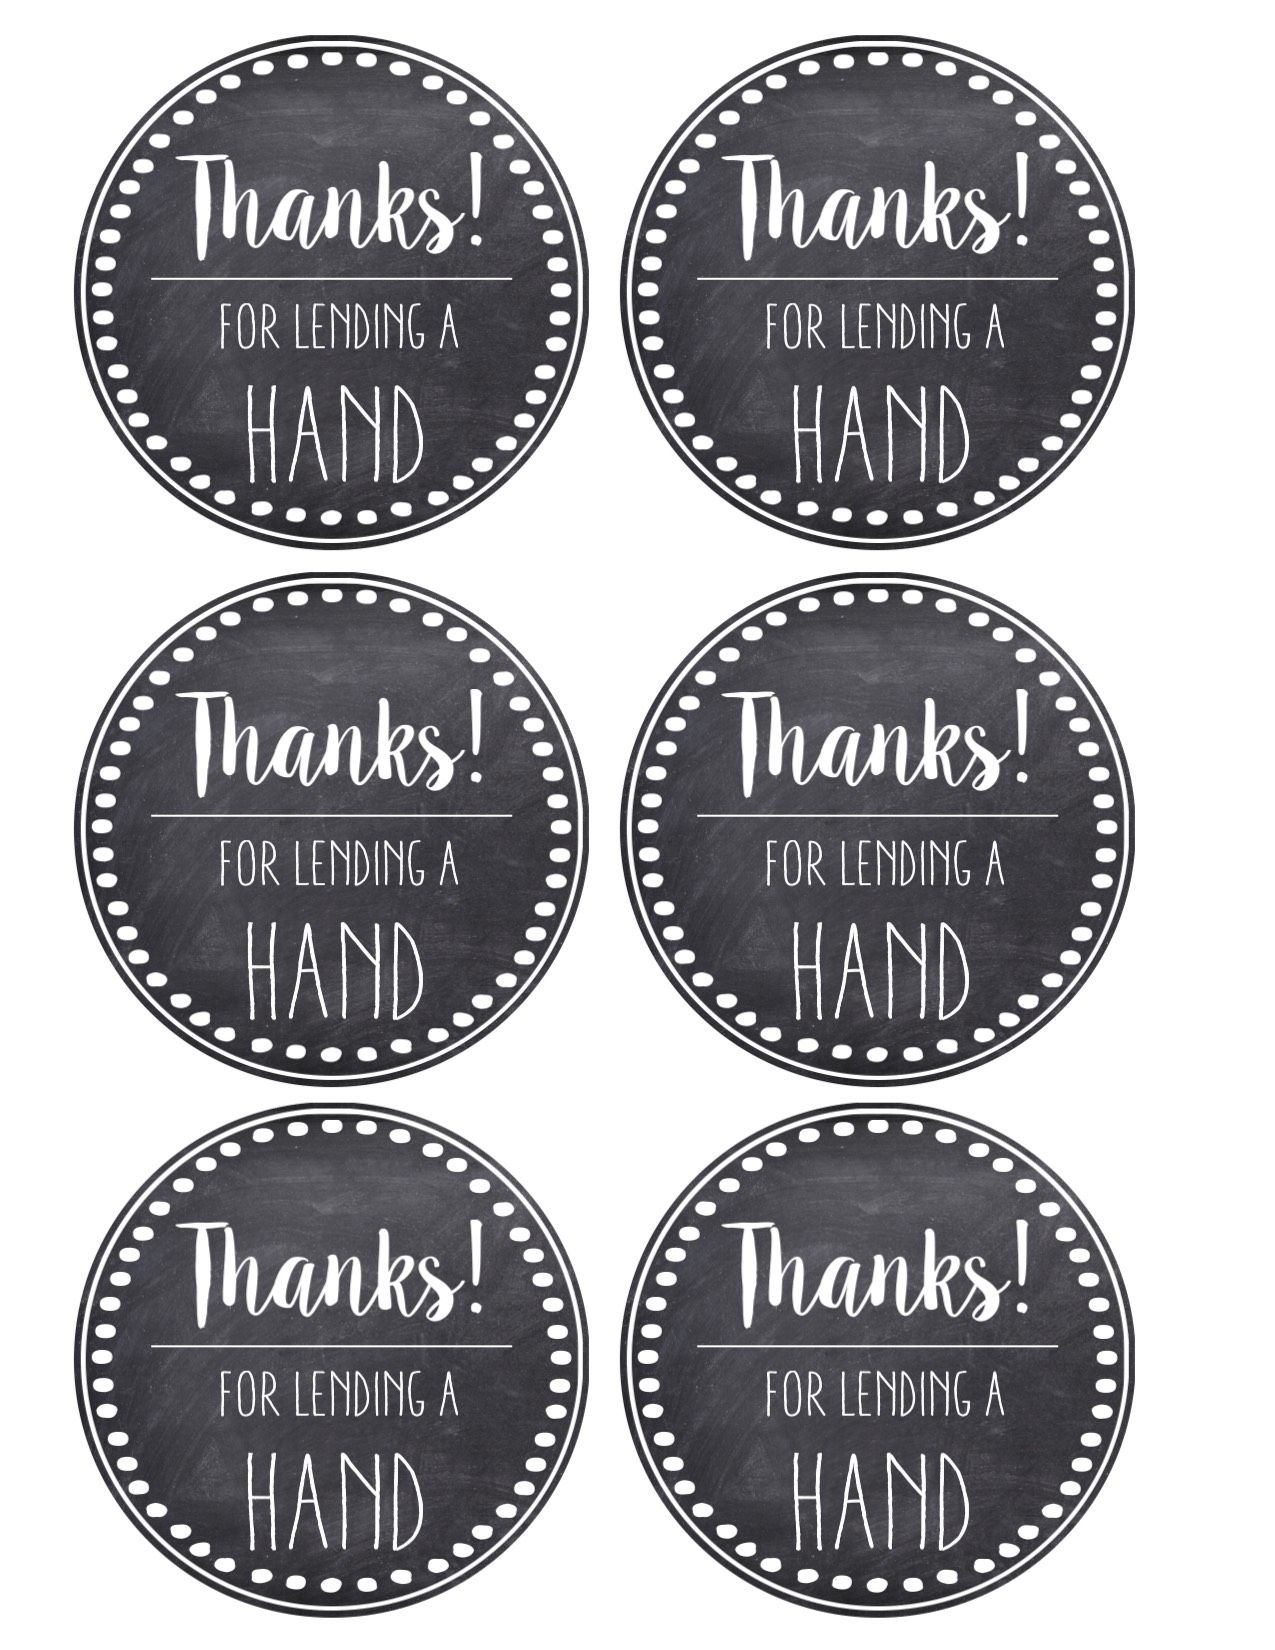 Thank You & Teacher Appreciation Tags Free Printable | Products I - Free Printable Thank You Tags